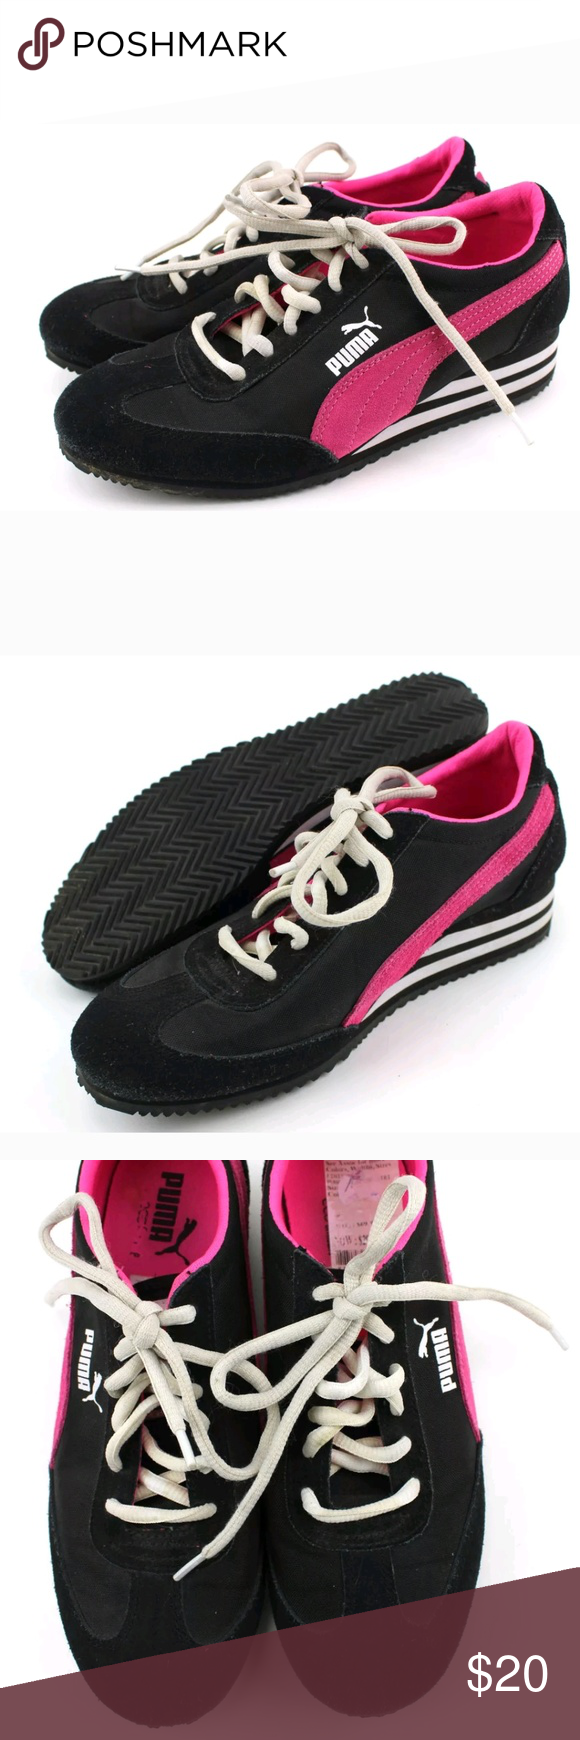 d71eb7a0384 Puma Eco Ortholite Black Pink Sneakers Puma Eco Ortholite Black Pink Sport  Lifestyle Sneakers